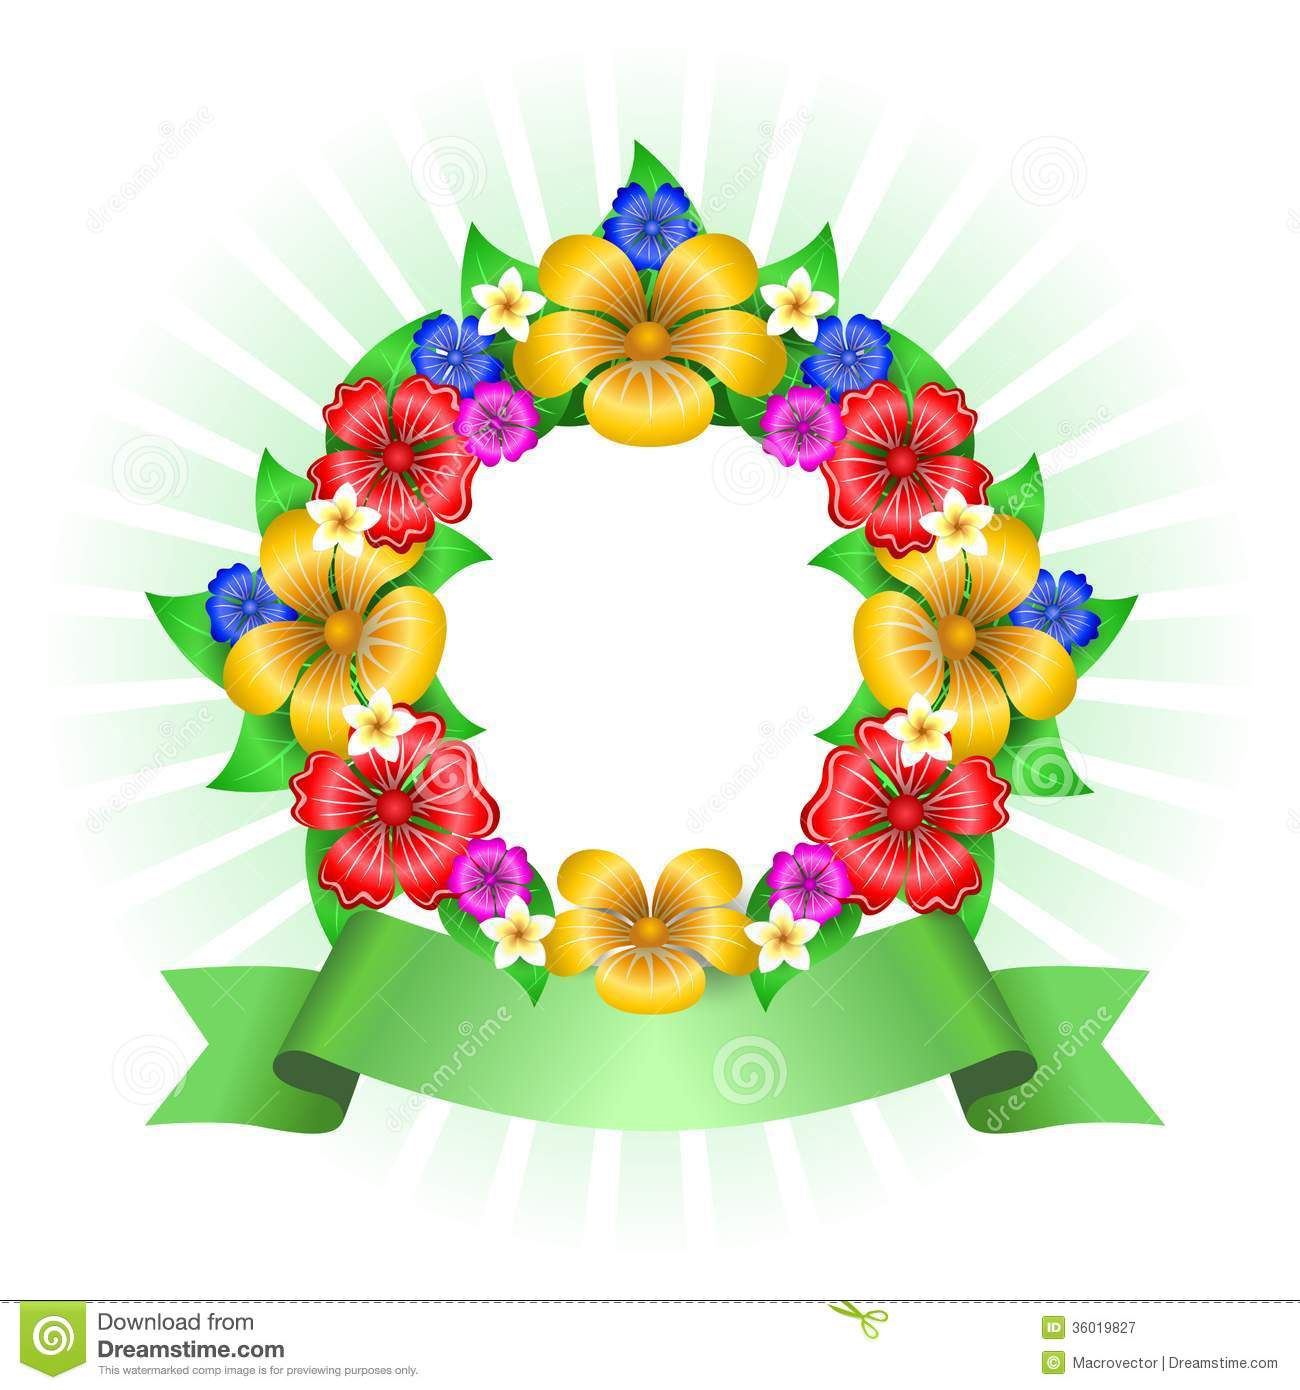 Tropical flowers pictures free picture Tropical Flowers Wreath Frame Royalty Free Stock Photography ... picture